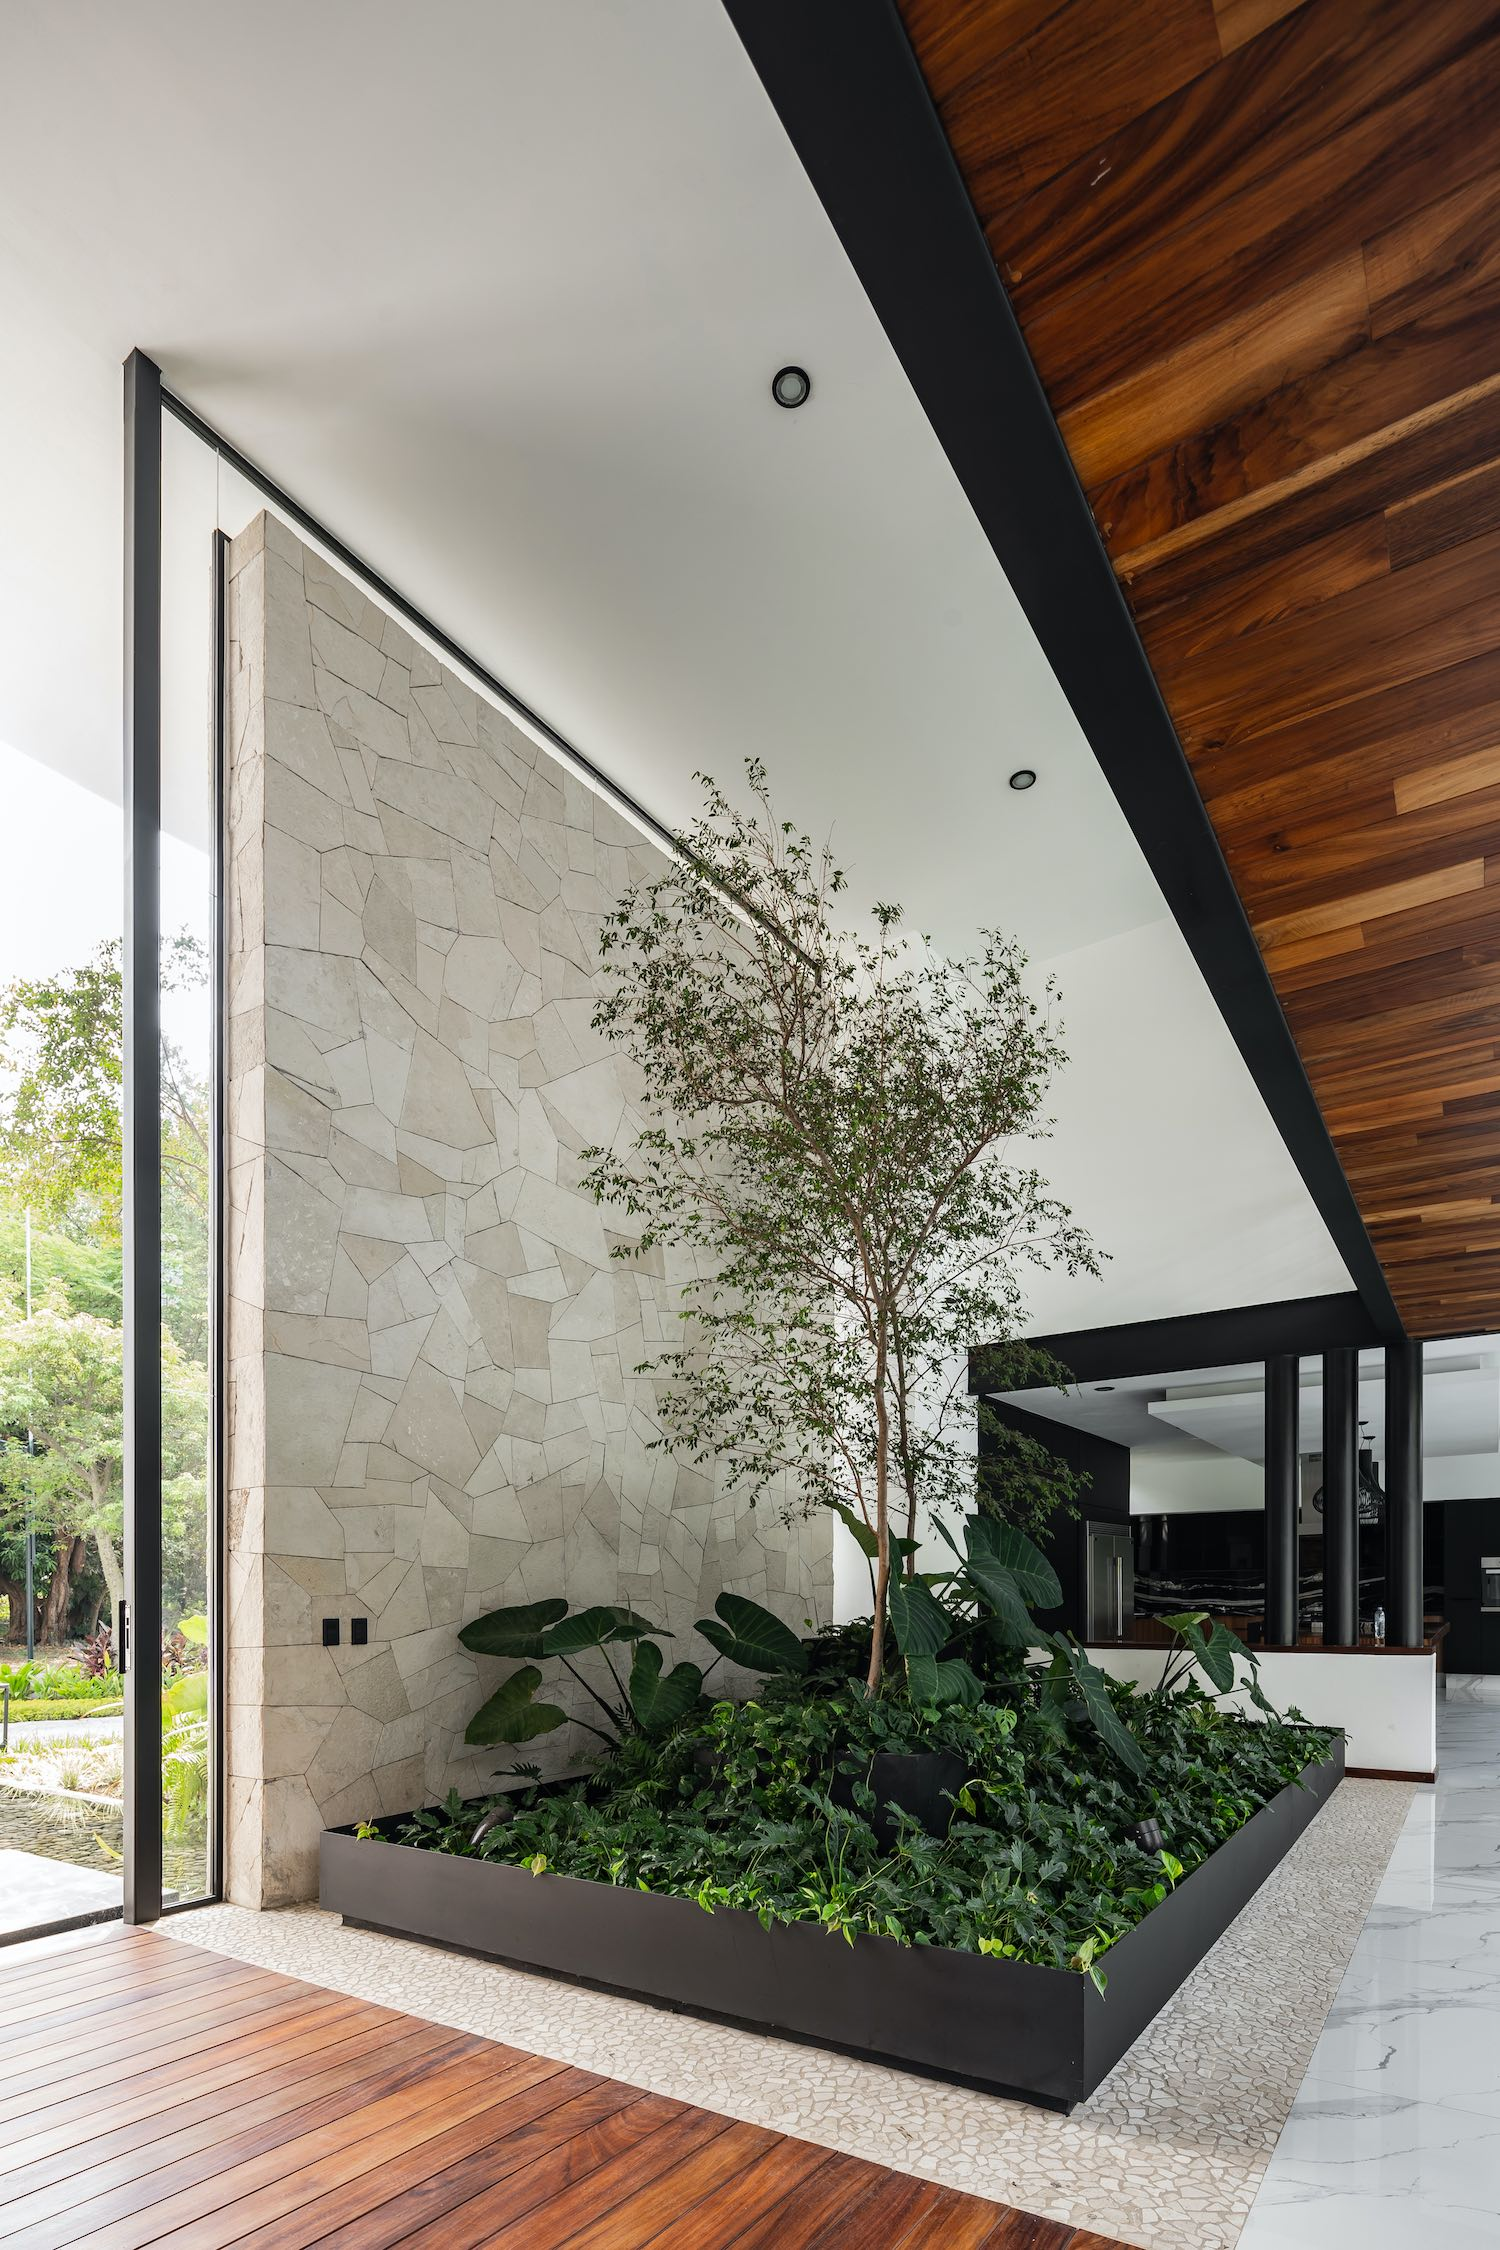 green plants and tree growing inside the house